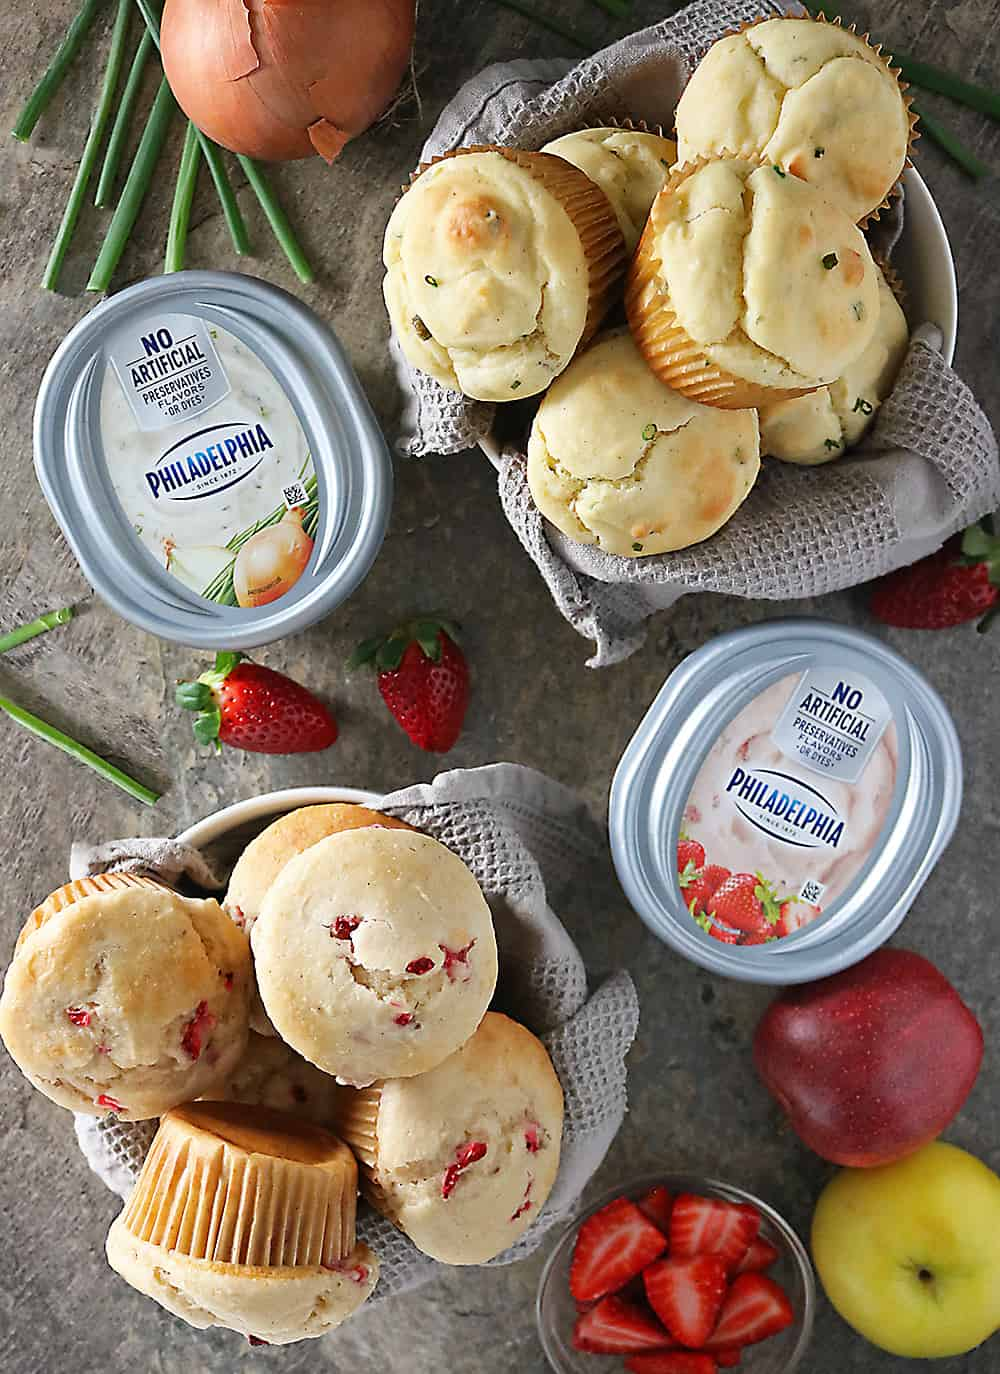 PHILADELPHIA Cream Cheese IN muffins And On Muffins Breakfast Photo